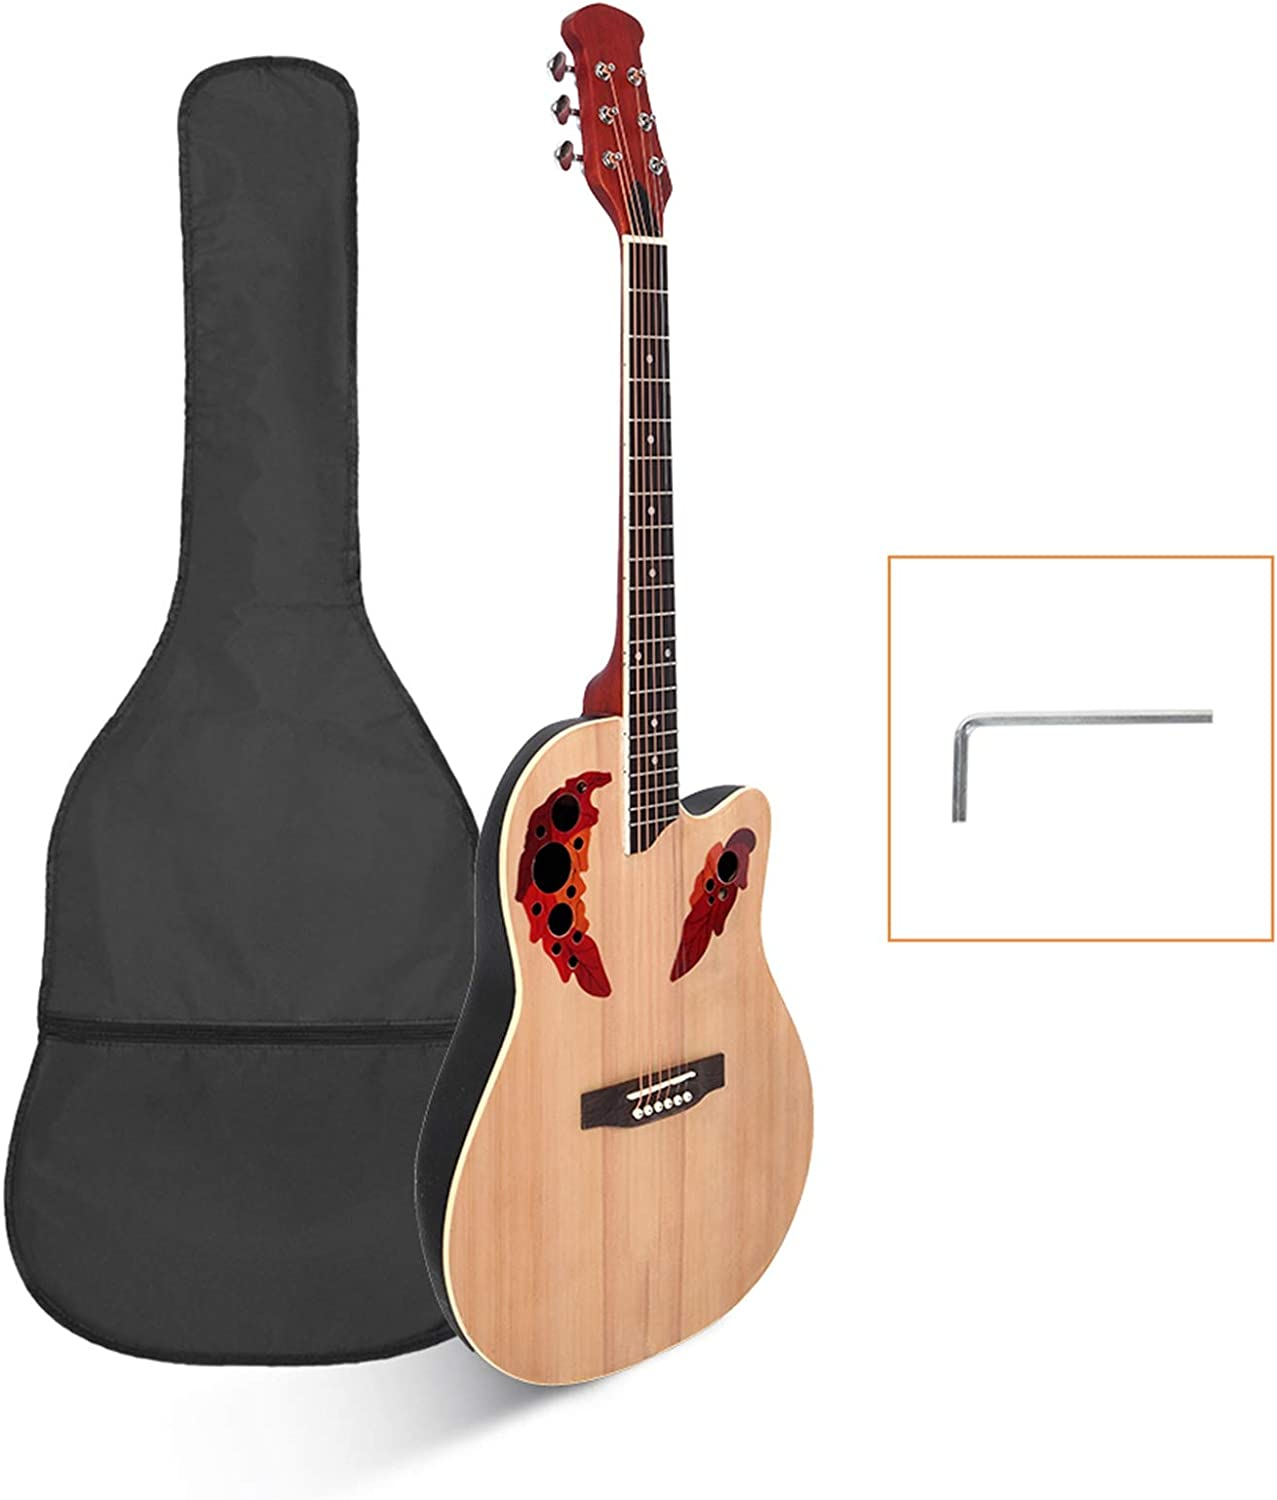 Durable Starter Super sale First Guitar Round Cutawary Bargain Back Acoustic